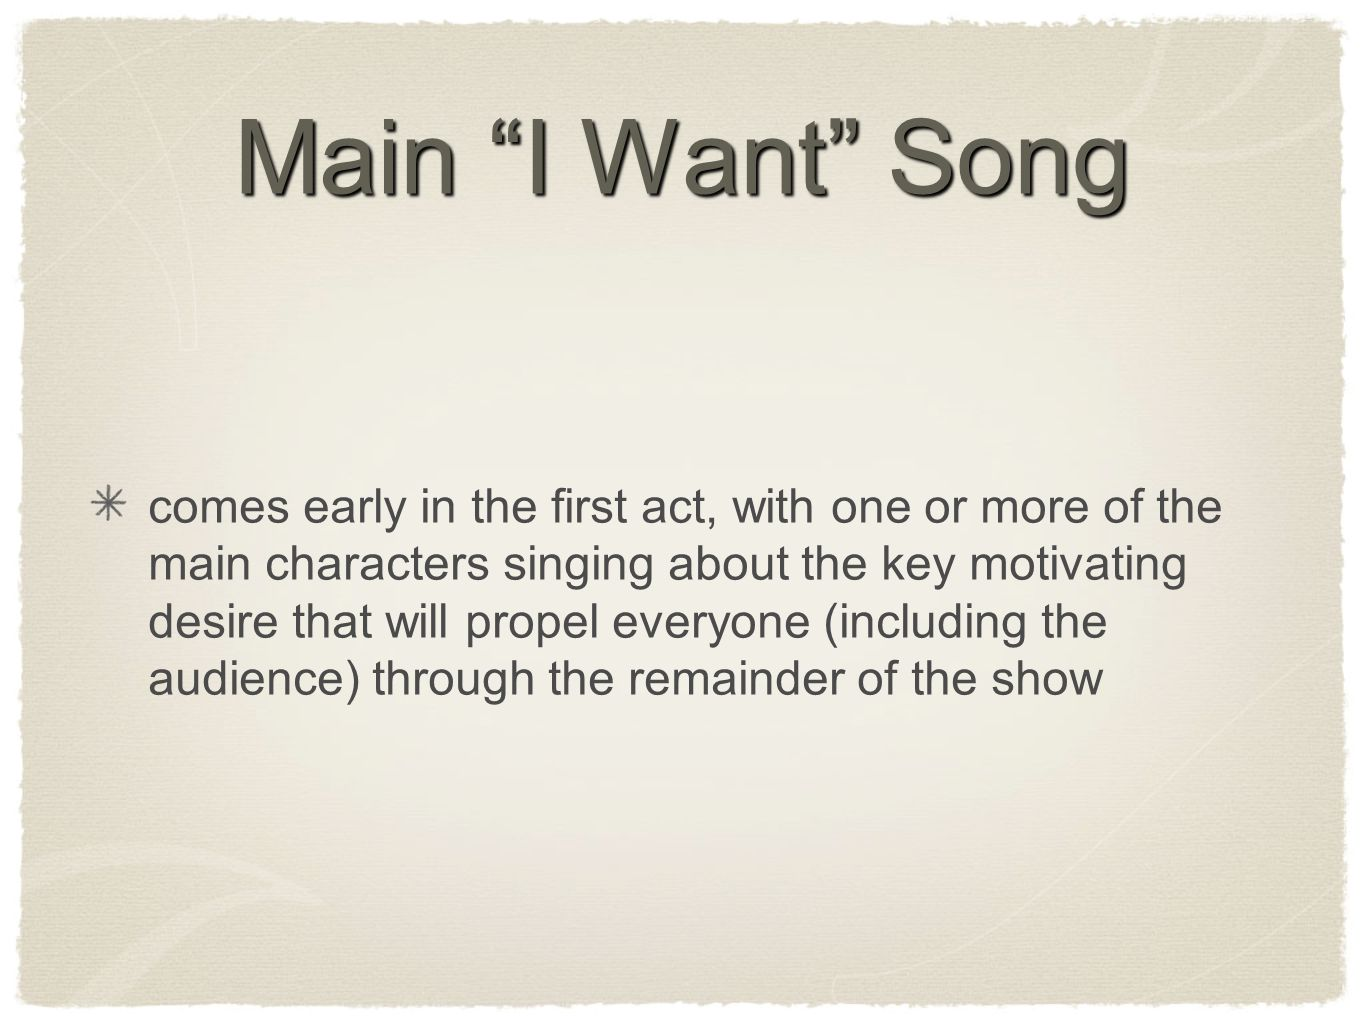 Main I Want Song comes early in the first act, with one or more of the main characters singing about the key motivating desire that will propel everyone (including the audience) through the remainder of the show